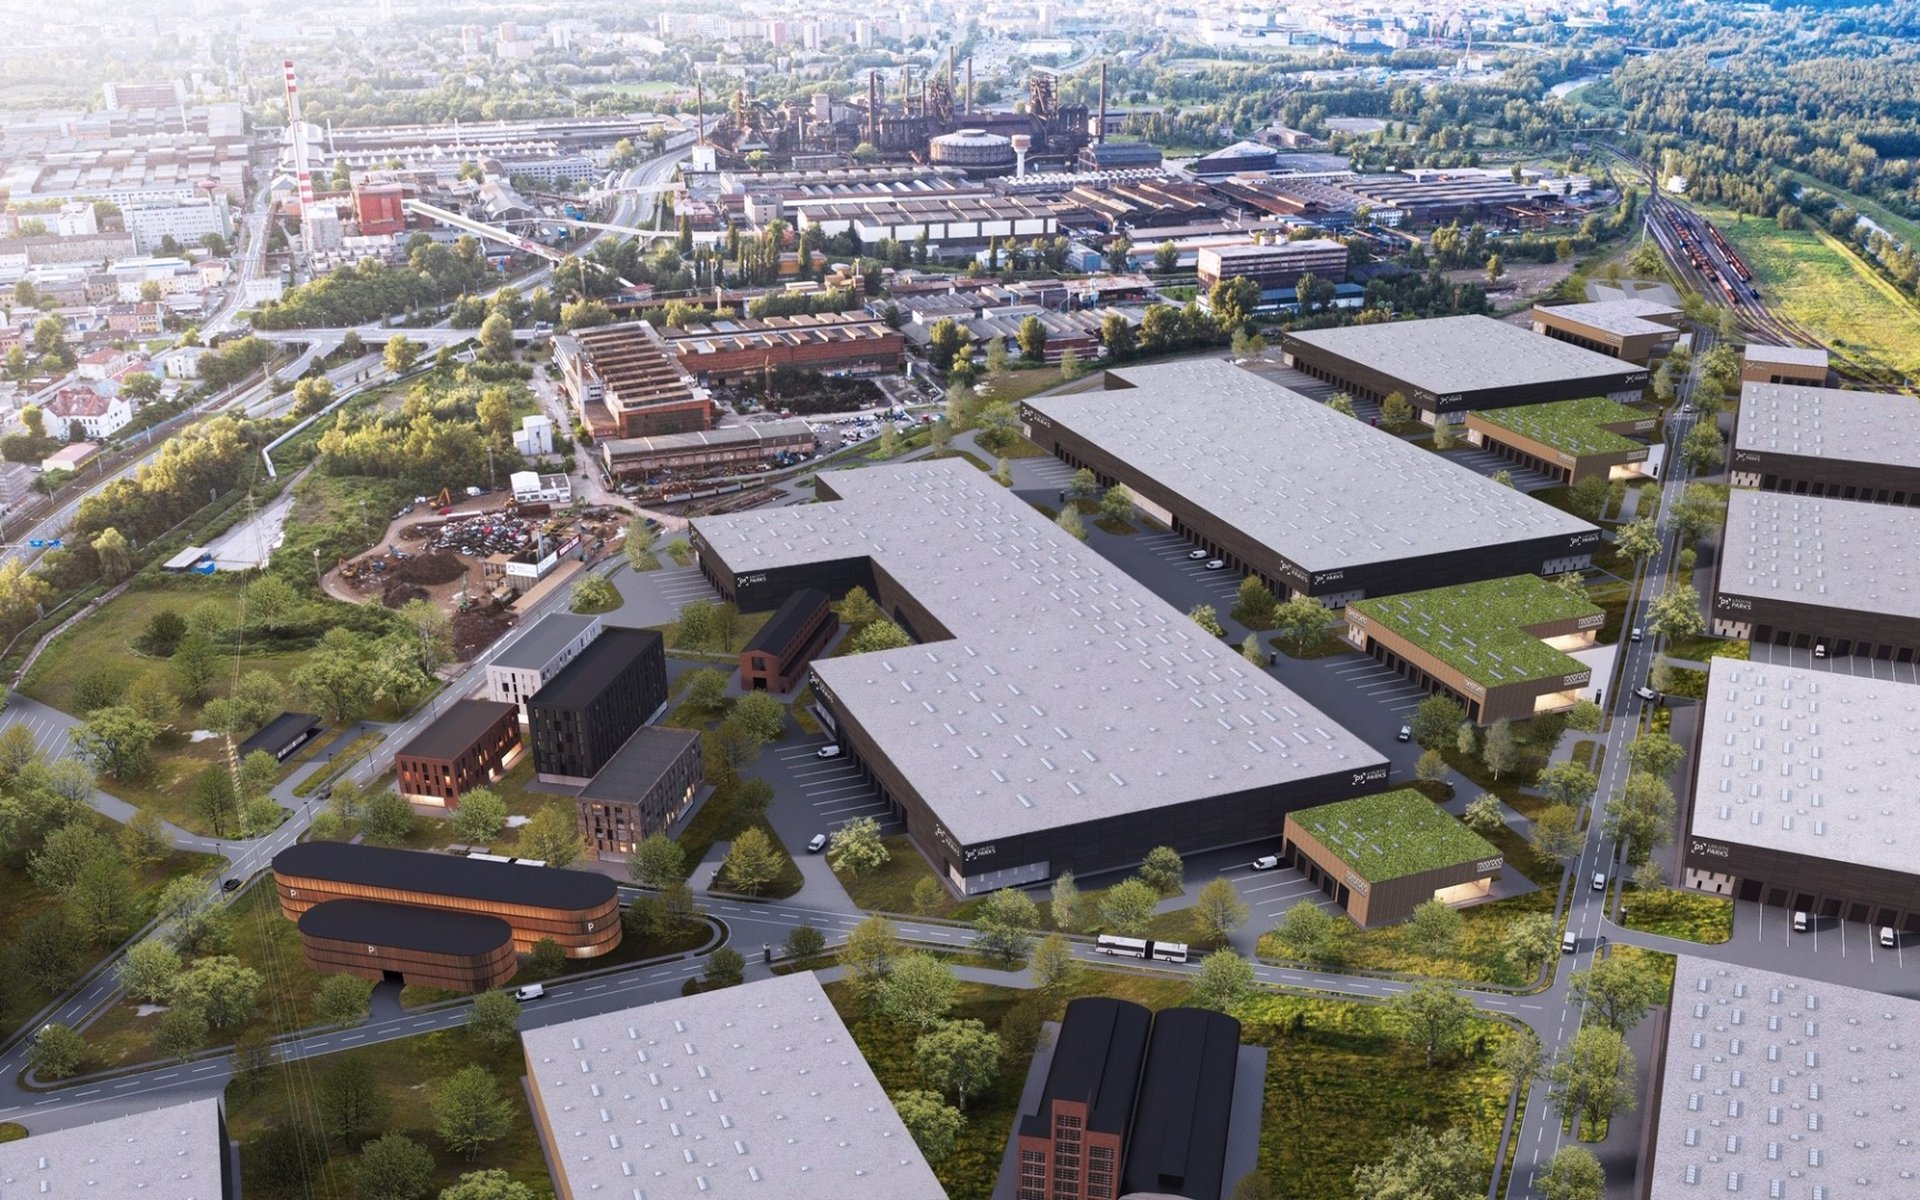 P3 Park Ostrava - lease of warehouse and production space